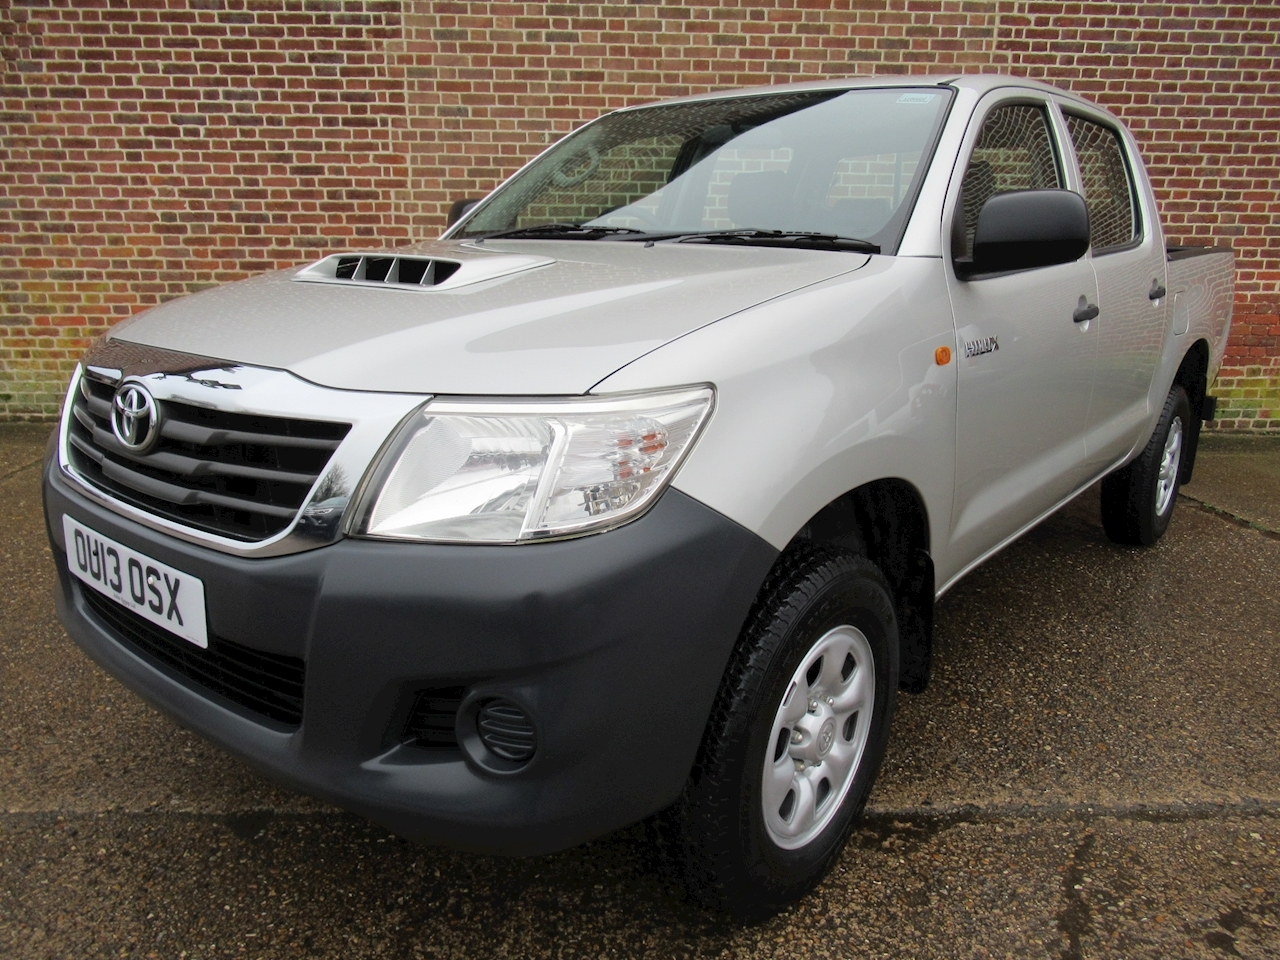 Hilux Hl2 4X4 D-4D Dcb Light 4X4 Utility 2.5 Manual Diesel